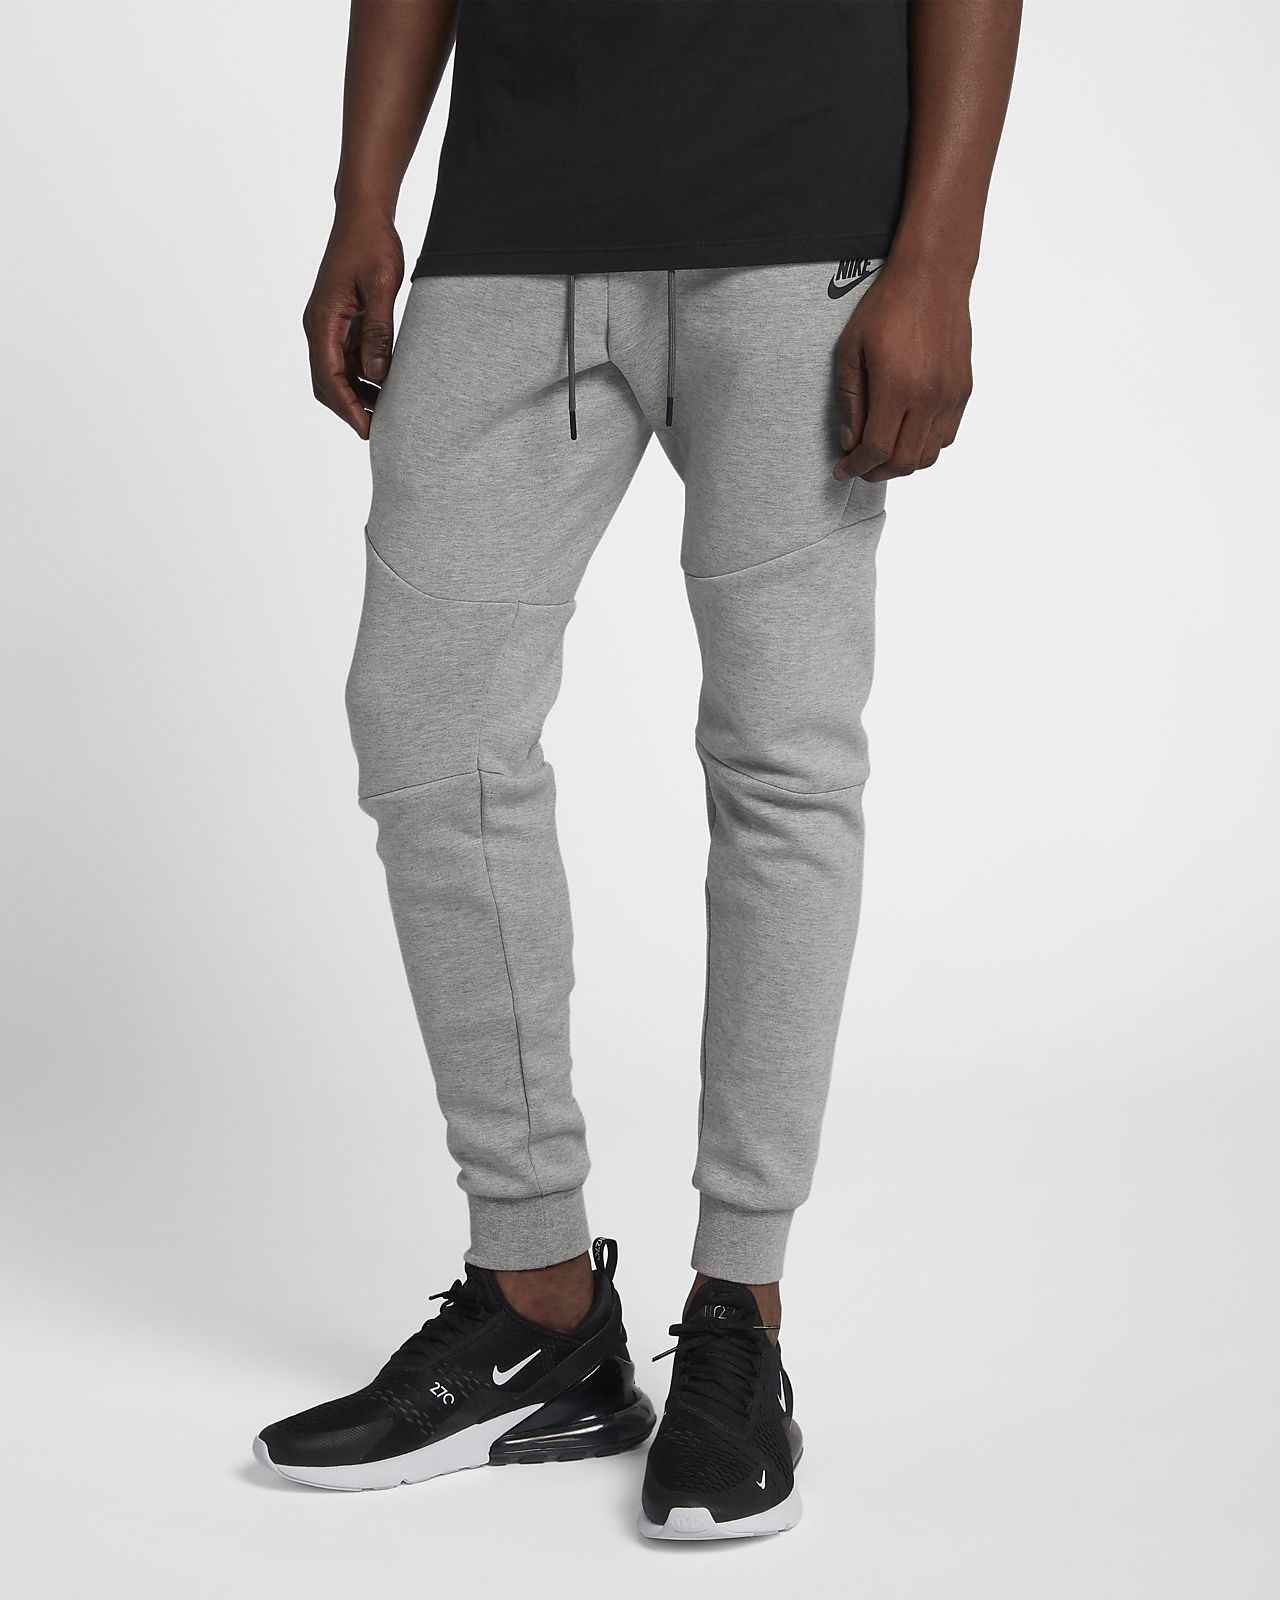 e80019509ae Nike Sportswear Tech Fleece Men's Joggers. Nike.com